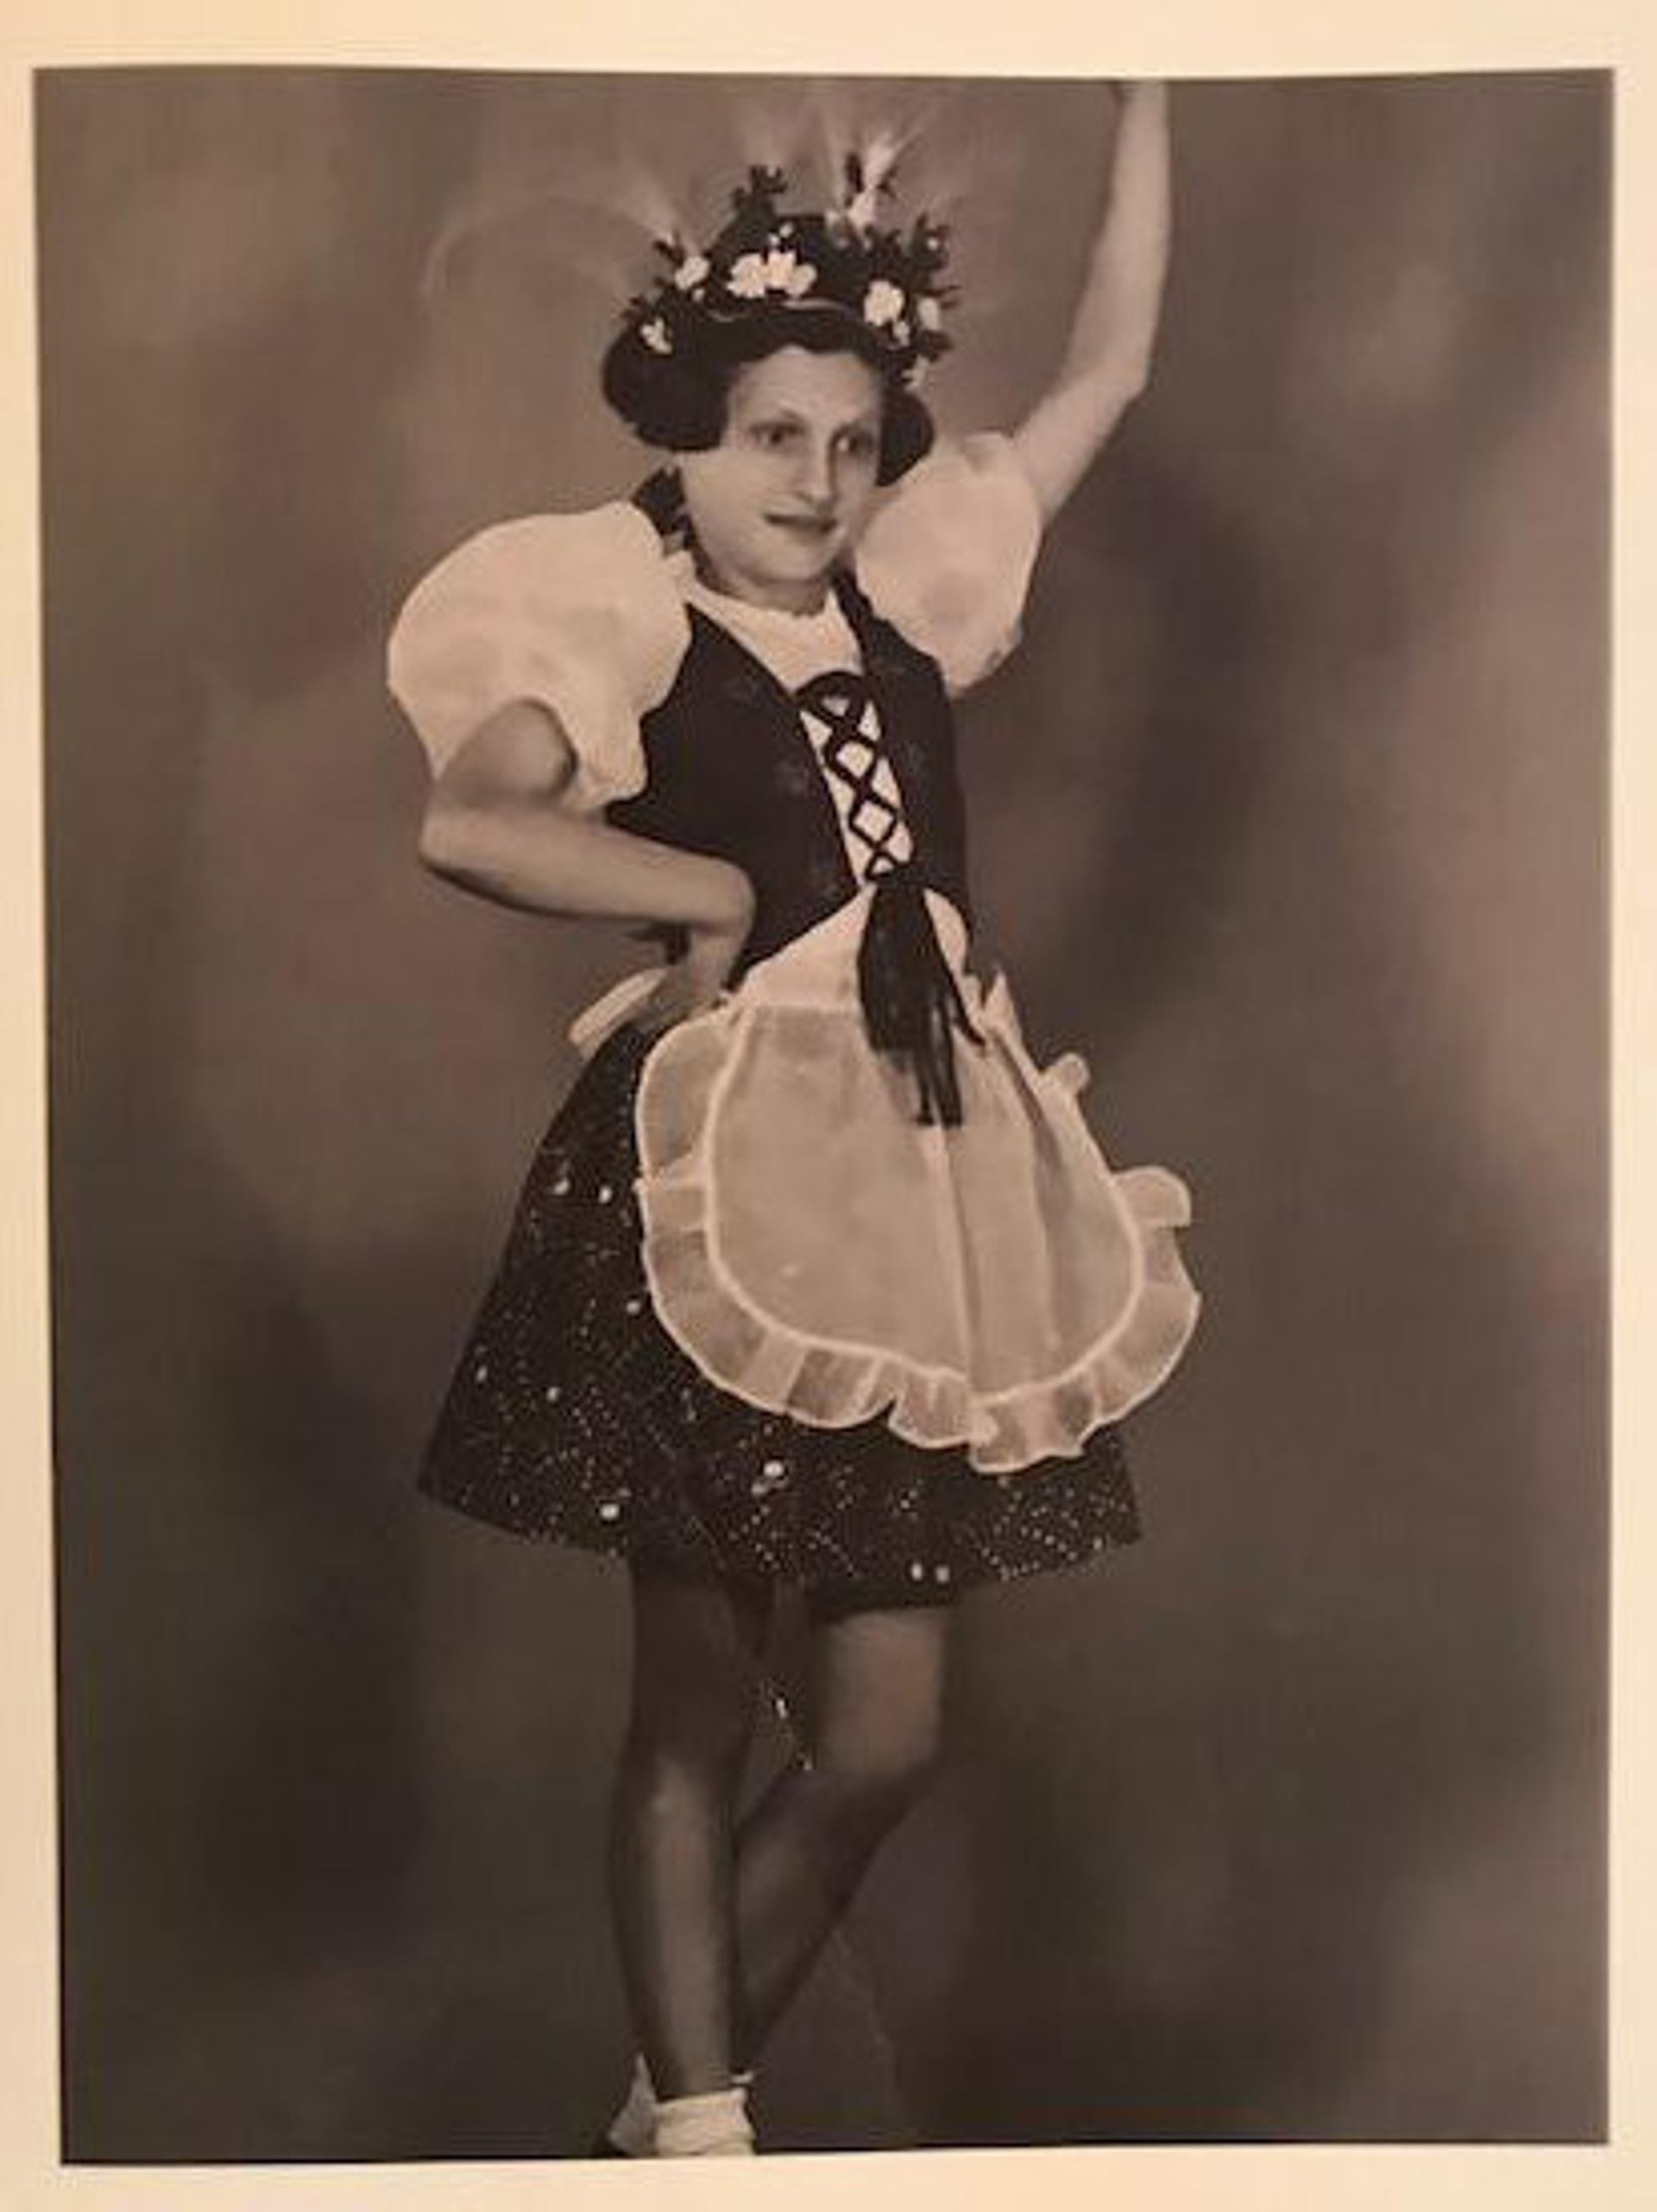 Judit Ornstein wearing a dance outfit as a child. Paul Ornstein wrote in his memoir that Judit loved to dance.